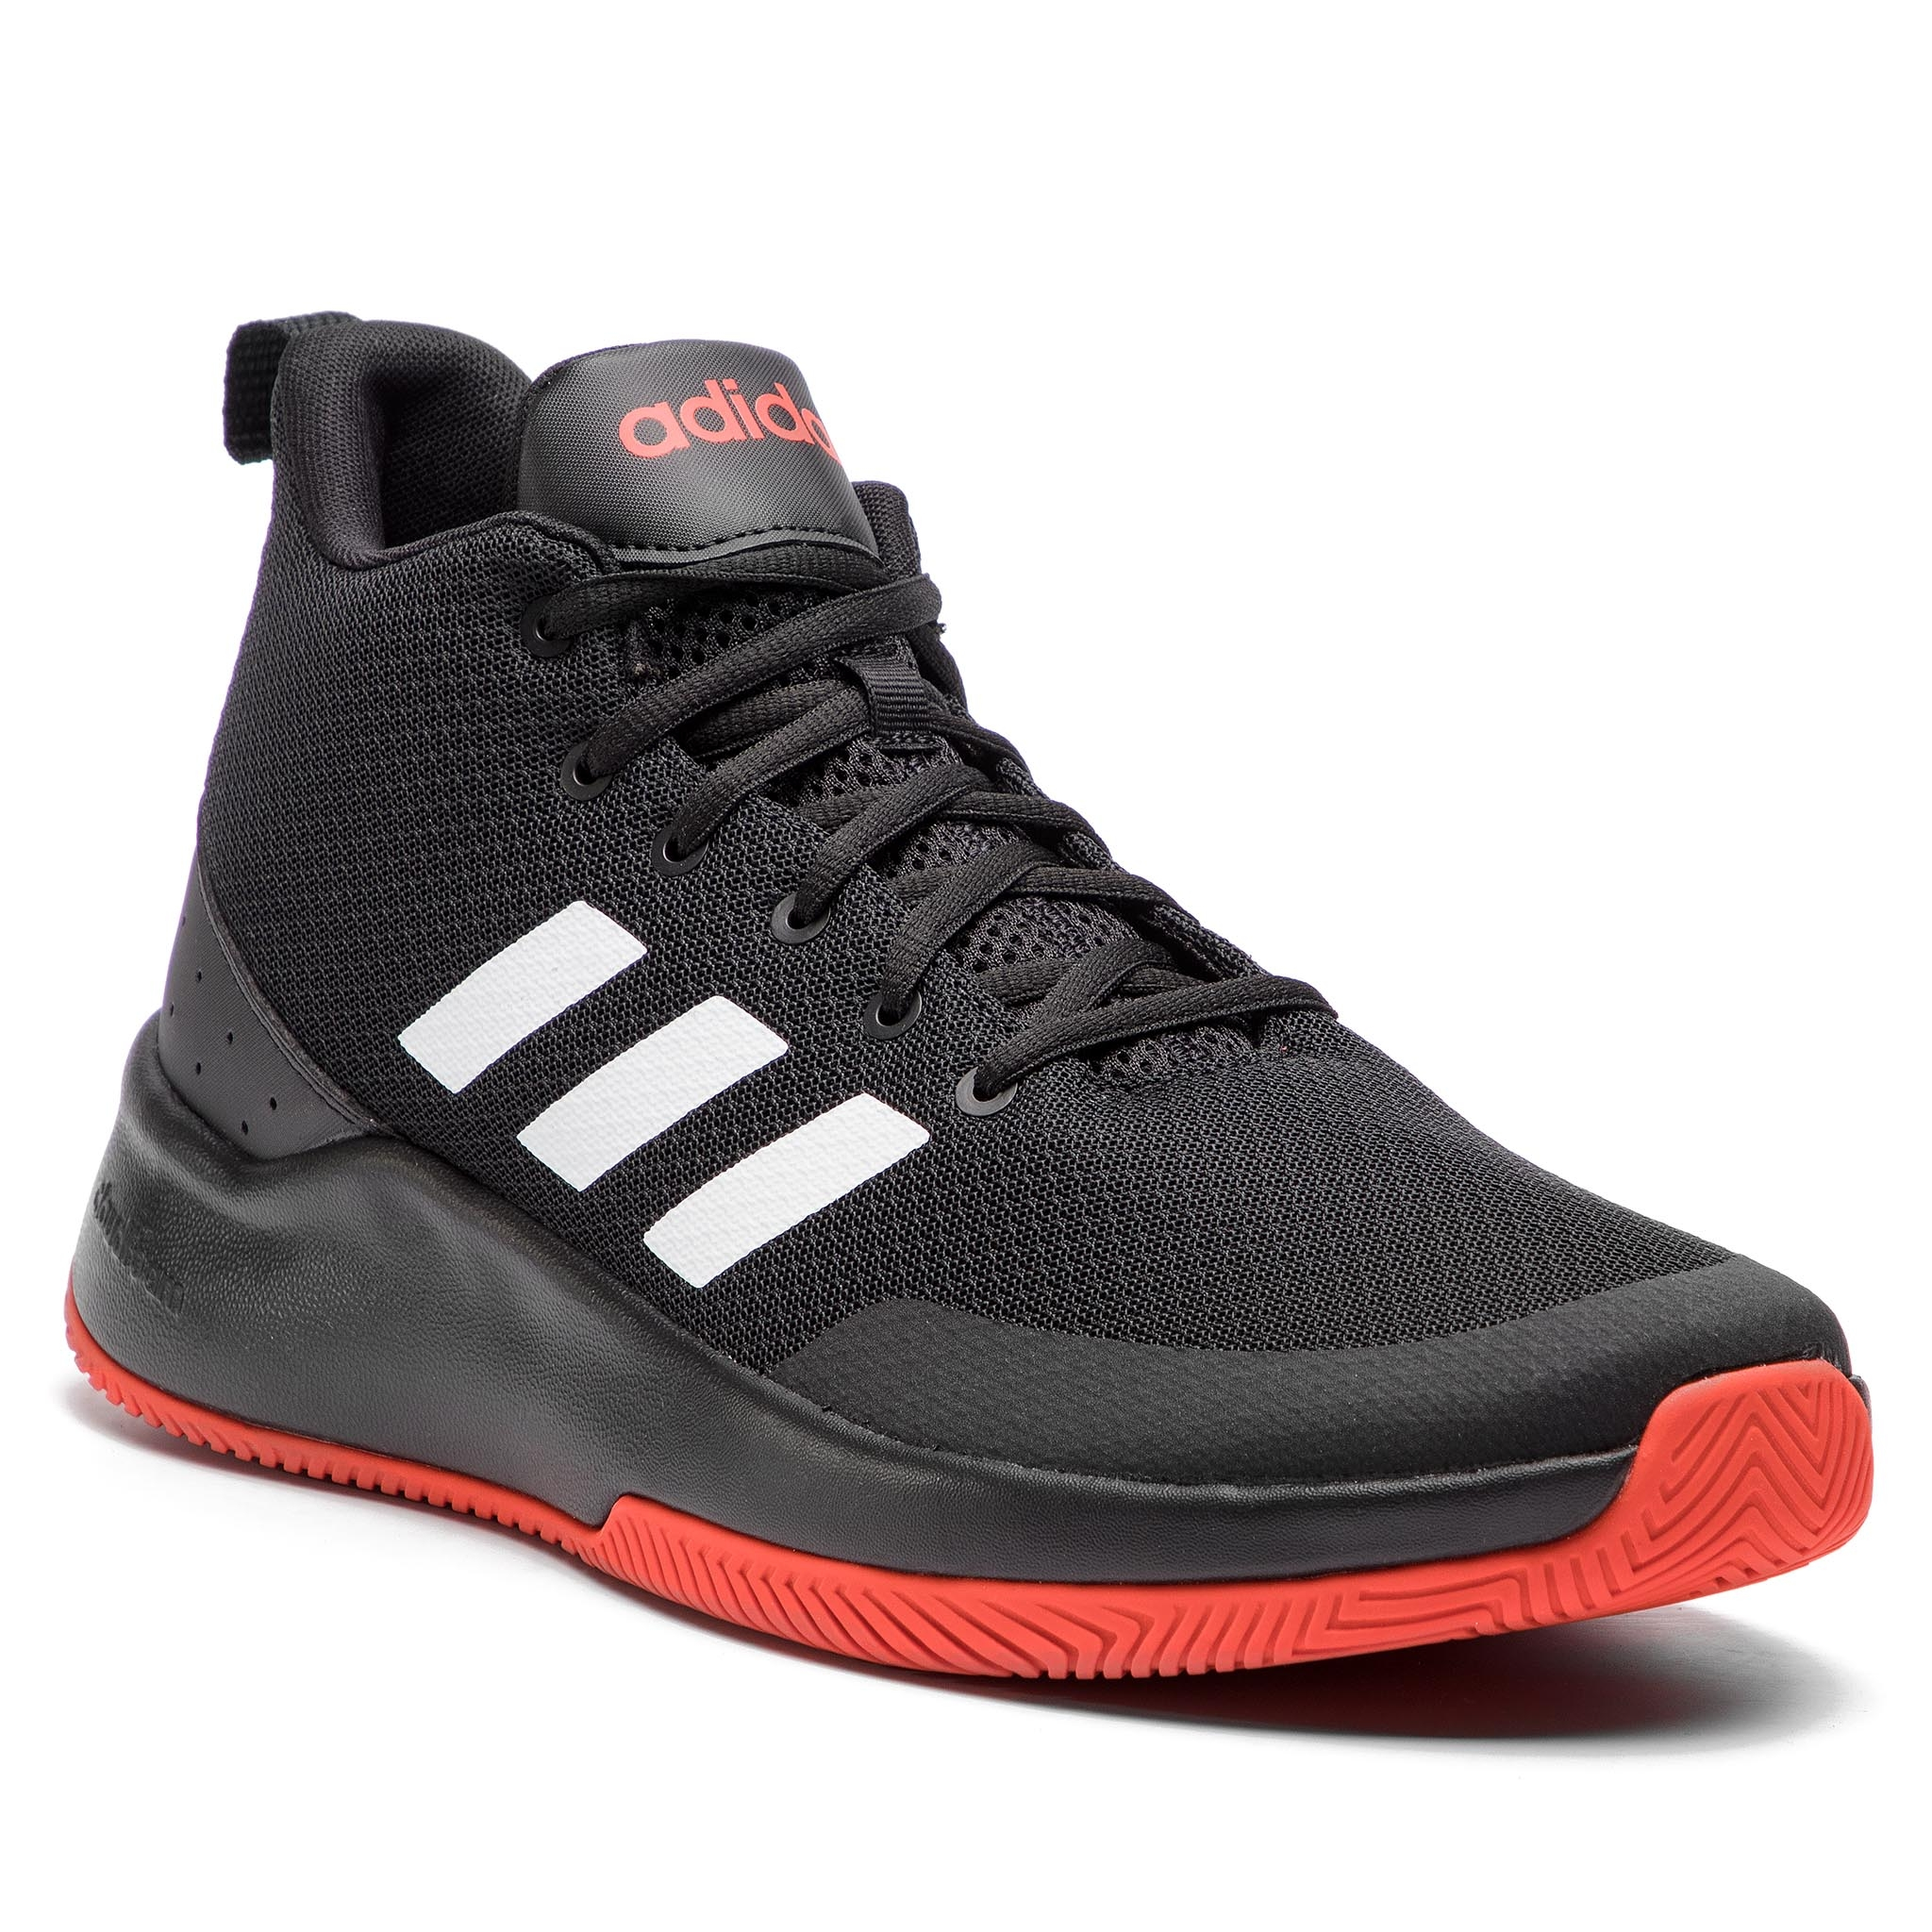 the best attitude 7b999 d8d0f Shoes adidas Speed End2end F34699 Cblack Ftwwht Actred